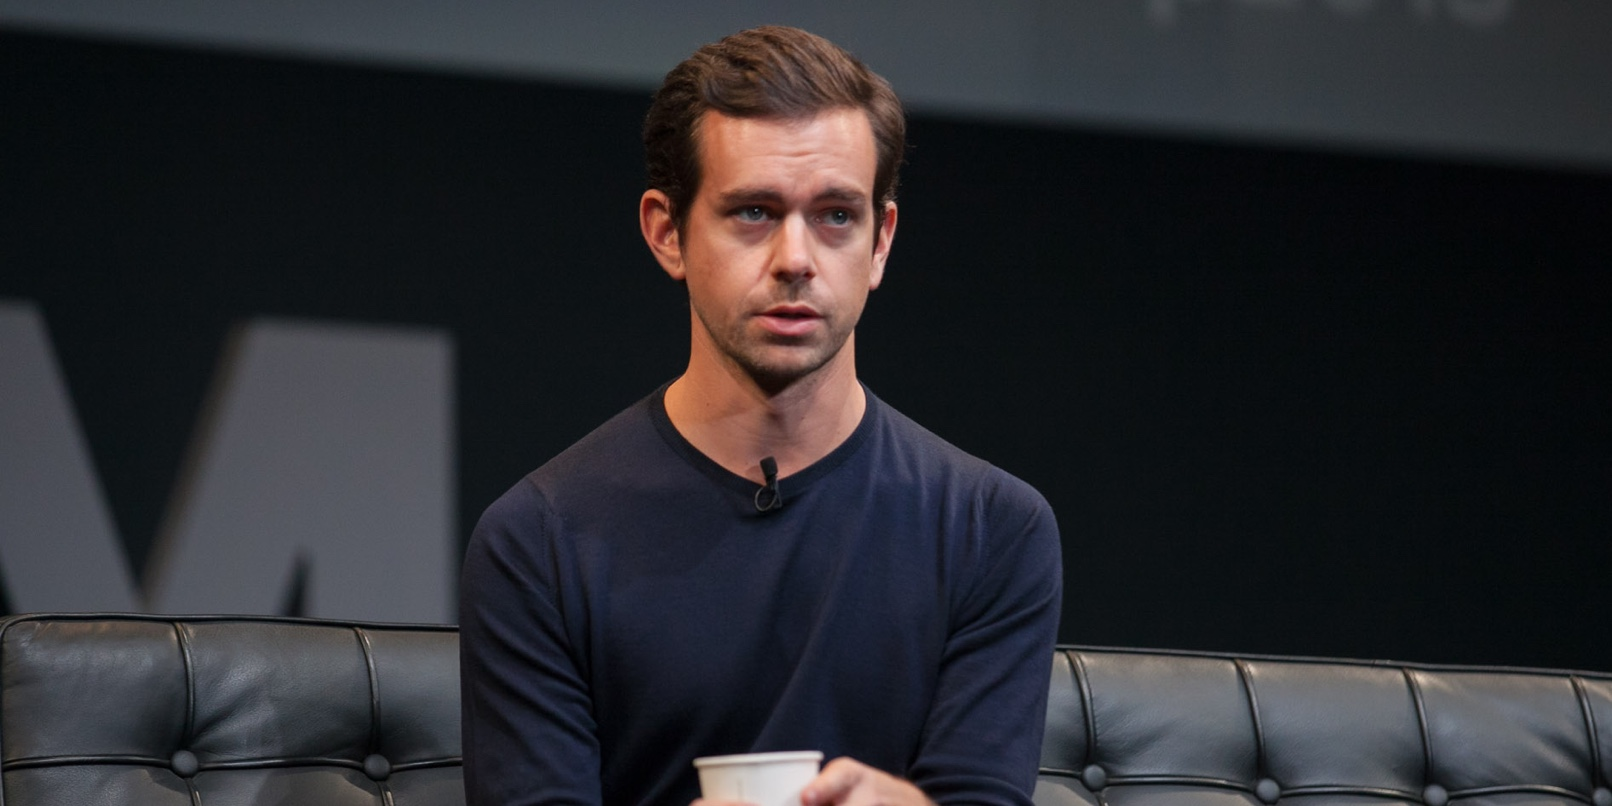 Jack Dorsey talks about managing two public companies